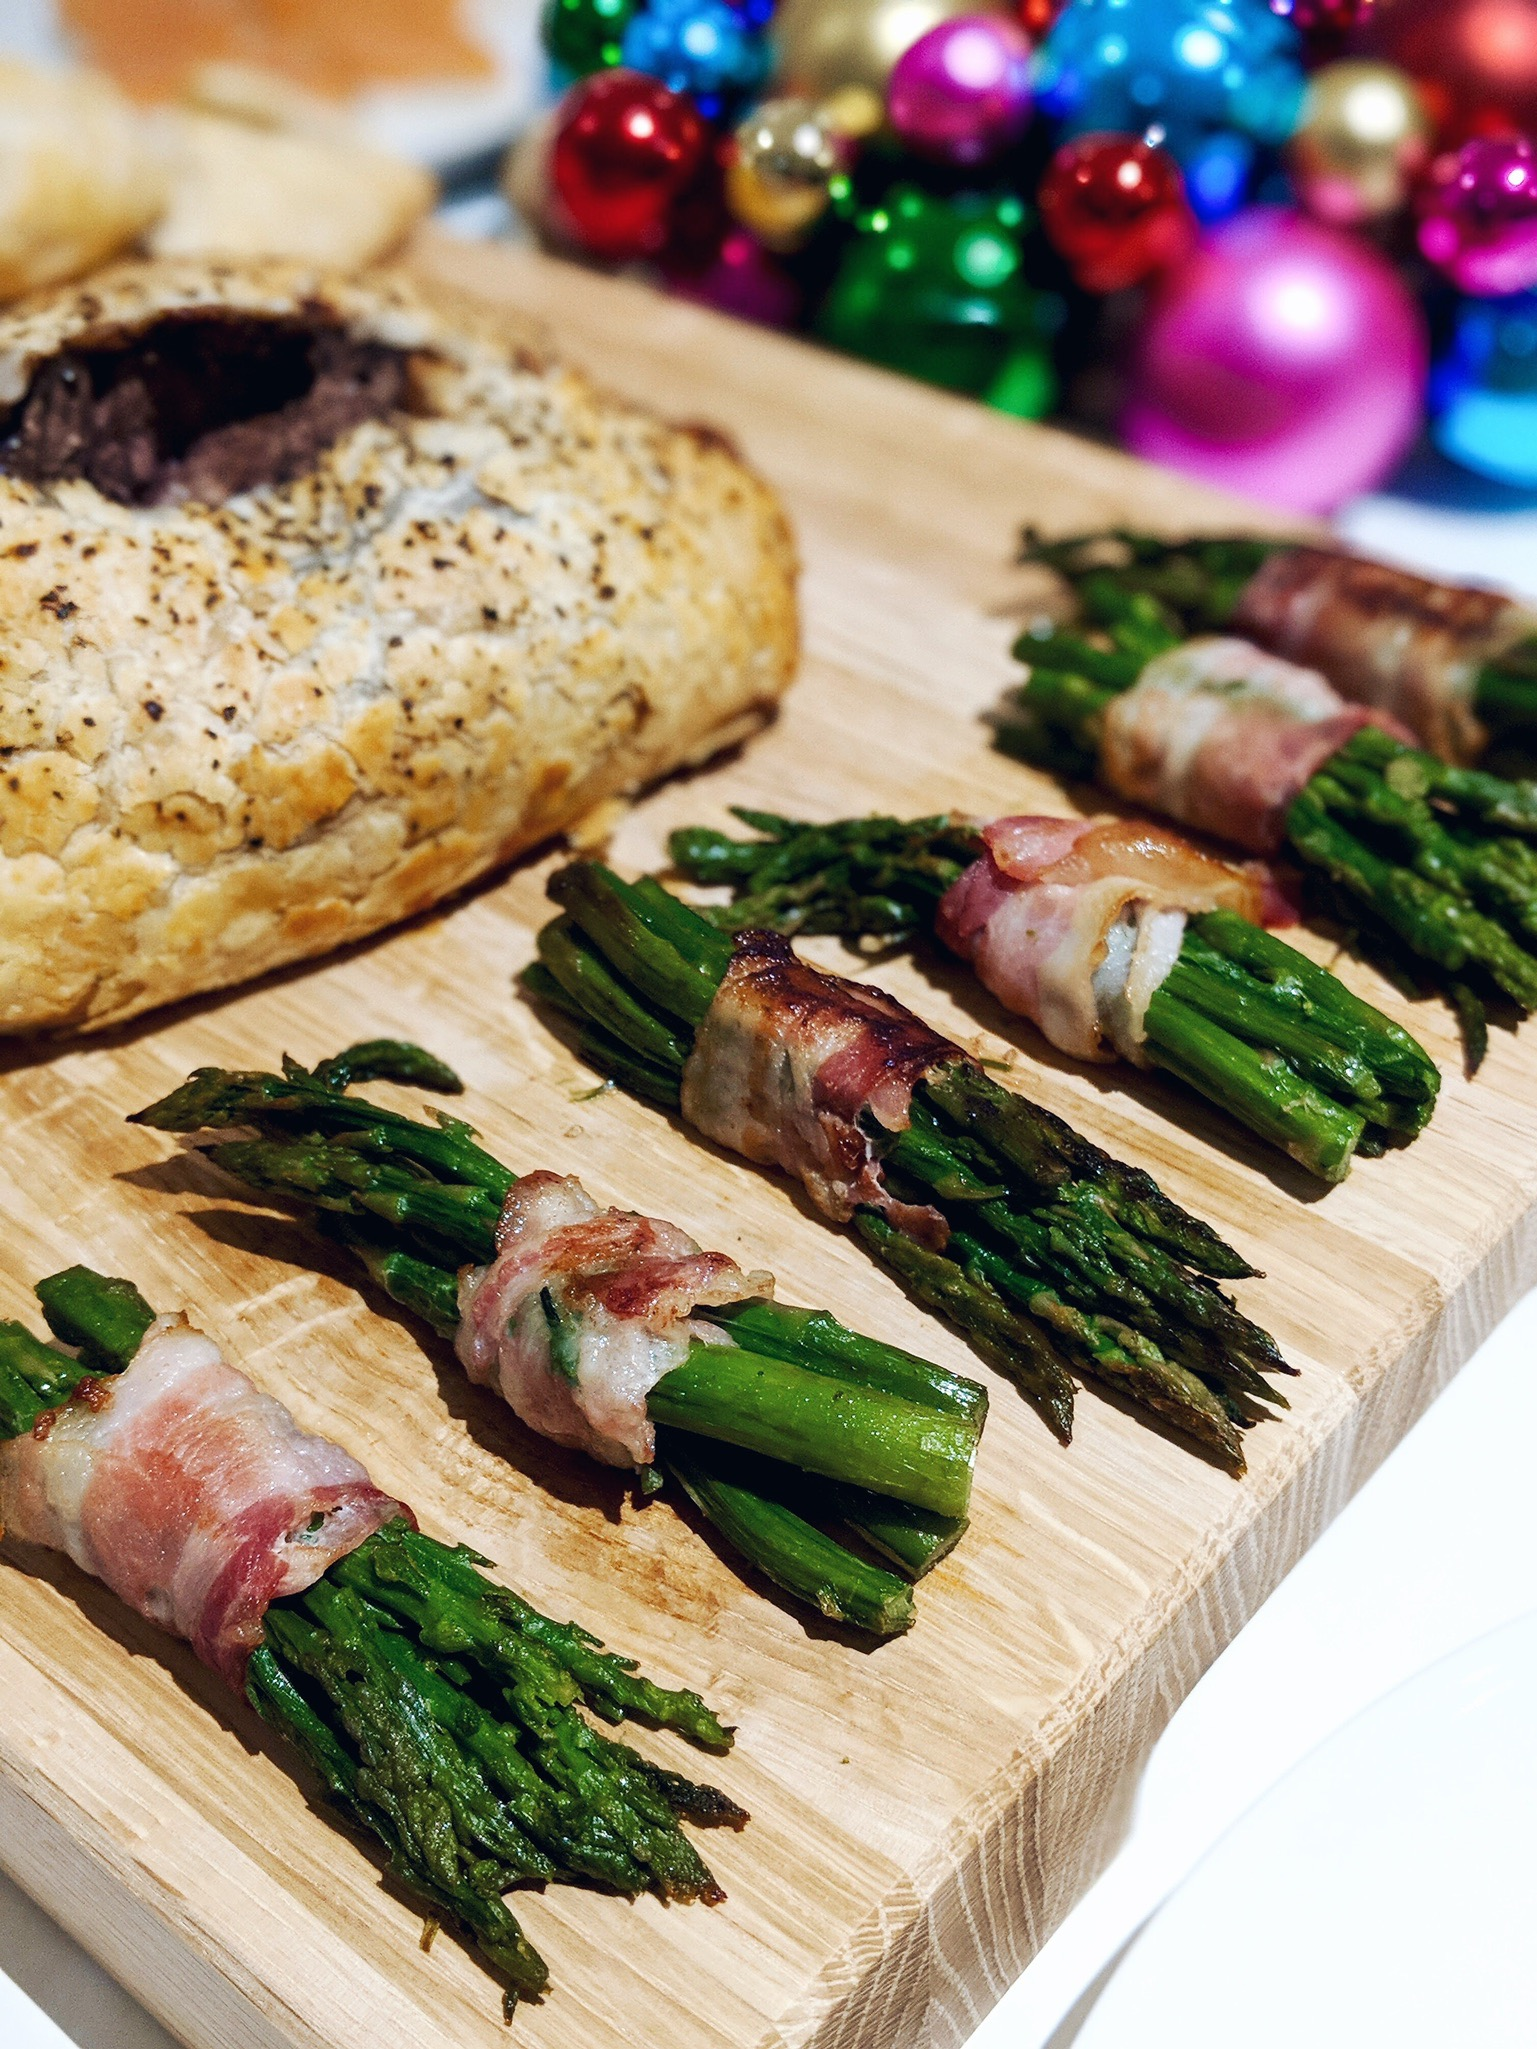 iceland luxury food christmas cocoa chelsea beef wellington asparagus bacon